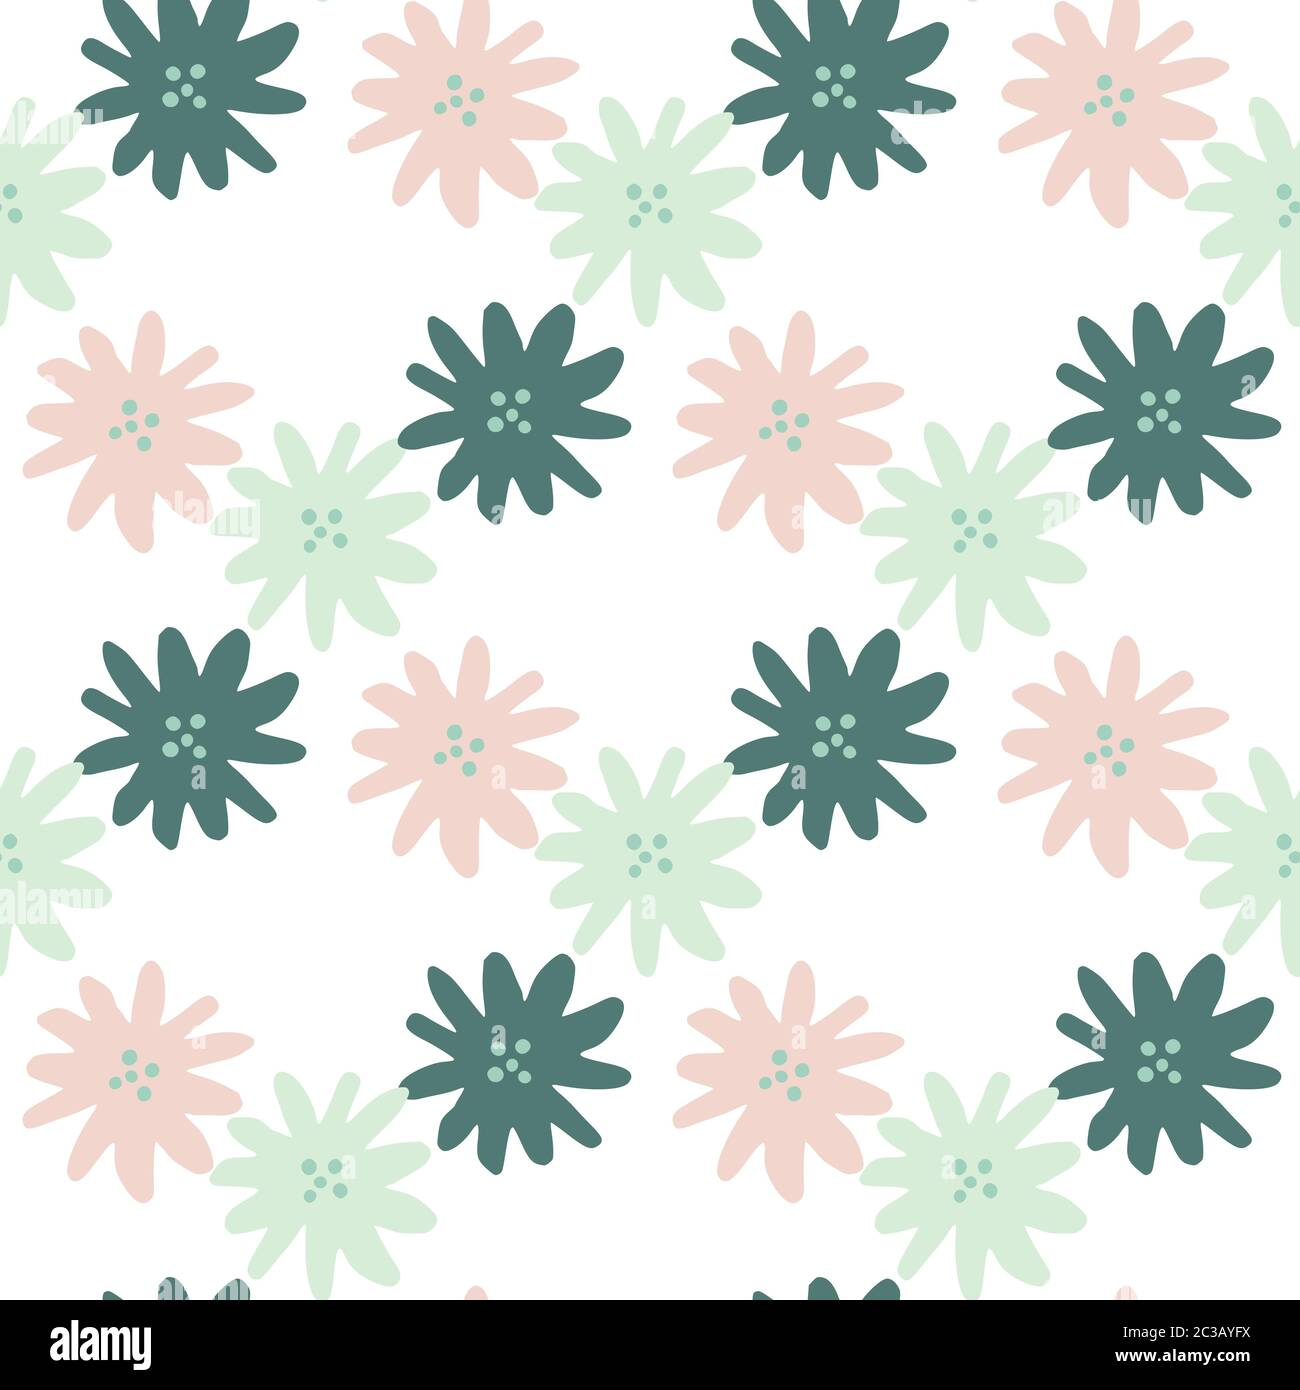 Retro Floral Wallpaper Small Flowers Cut Out Stock Images Pictures Alamy,Fractal Design Meshify C Build